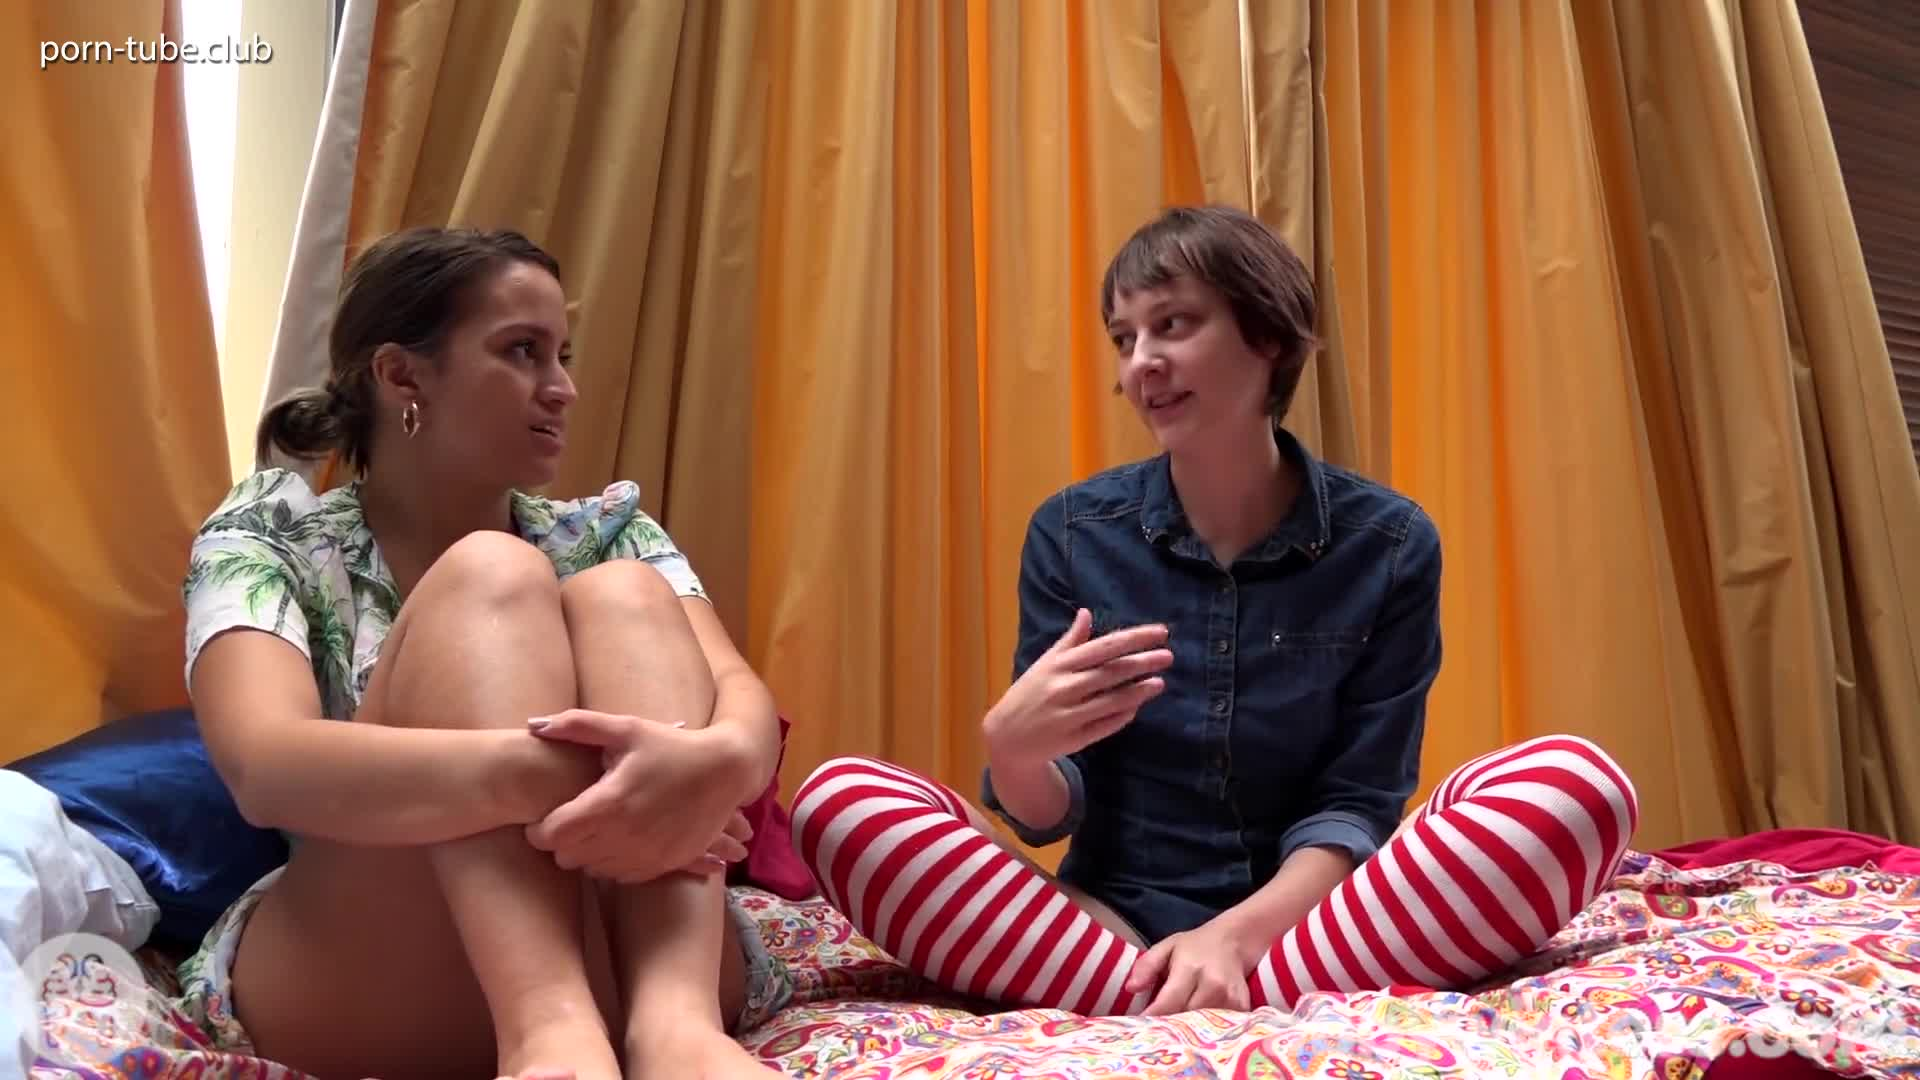 AbbyWinters 17.12.02 Bobbie And Luciana Lesbian